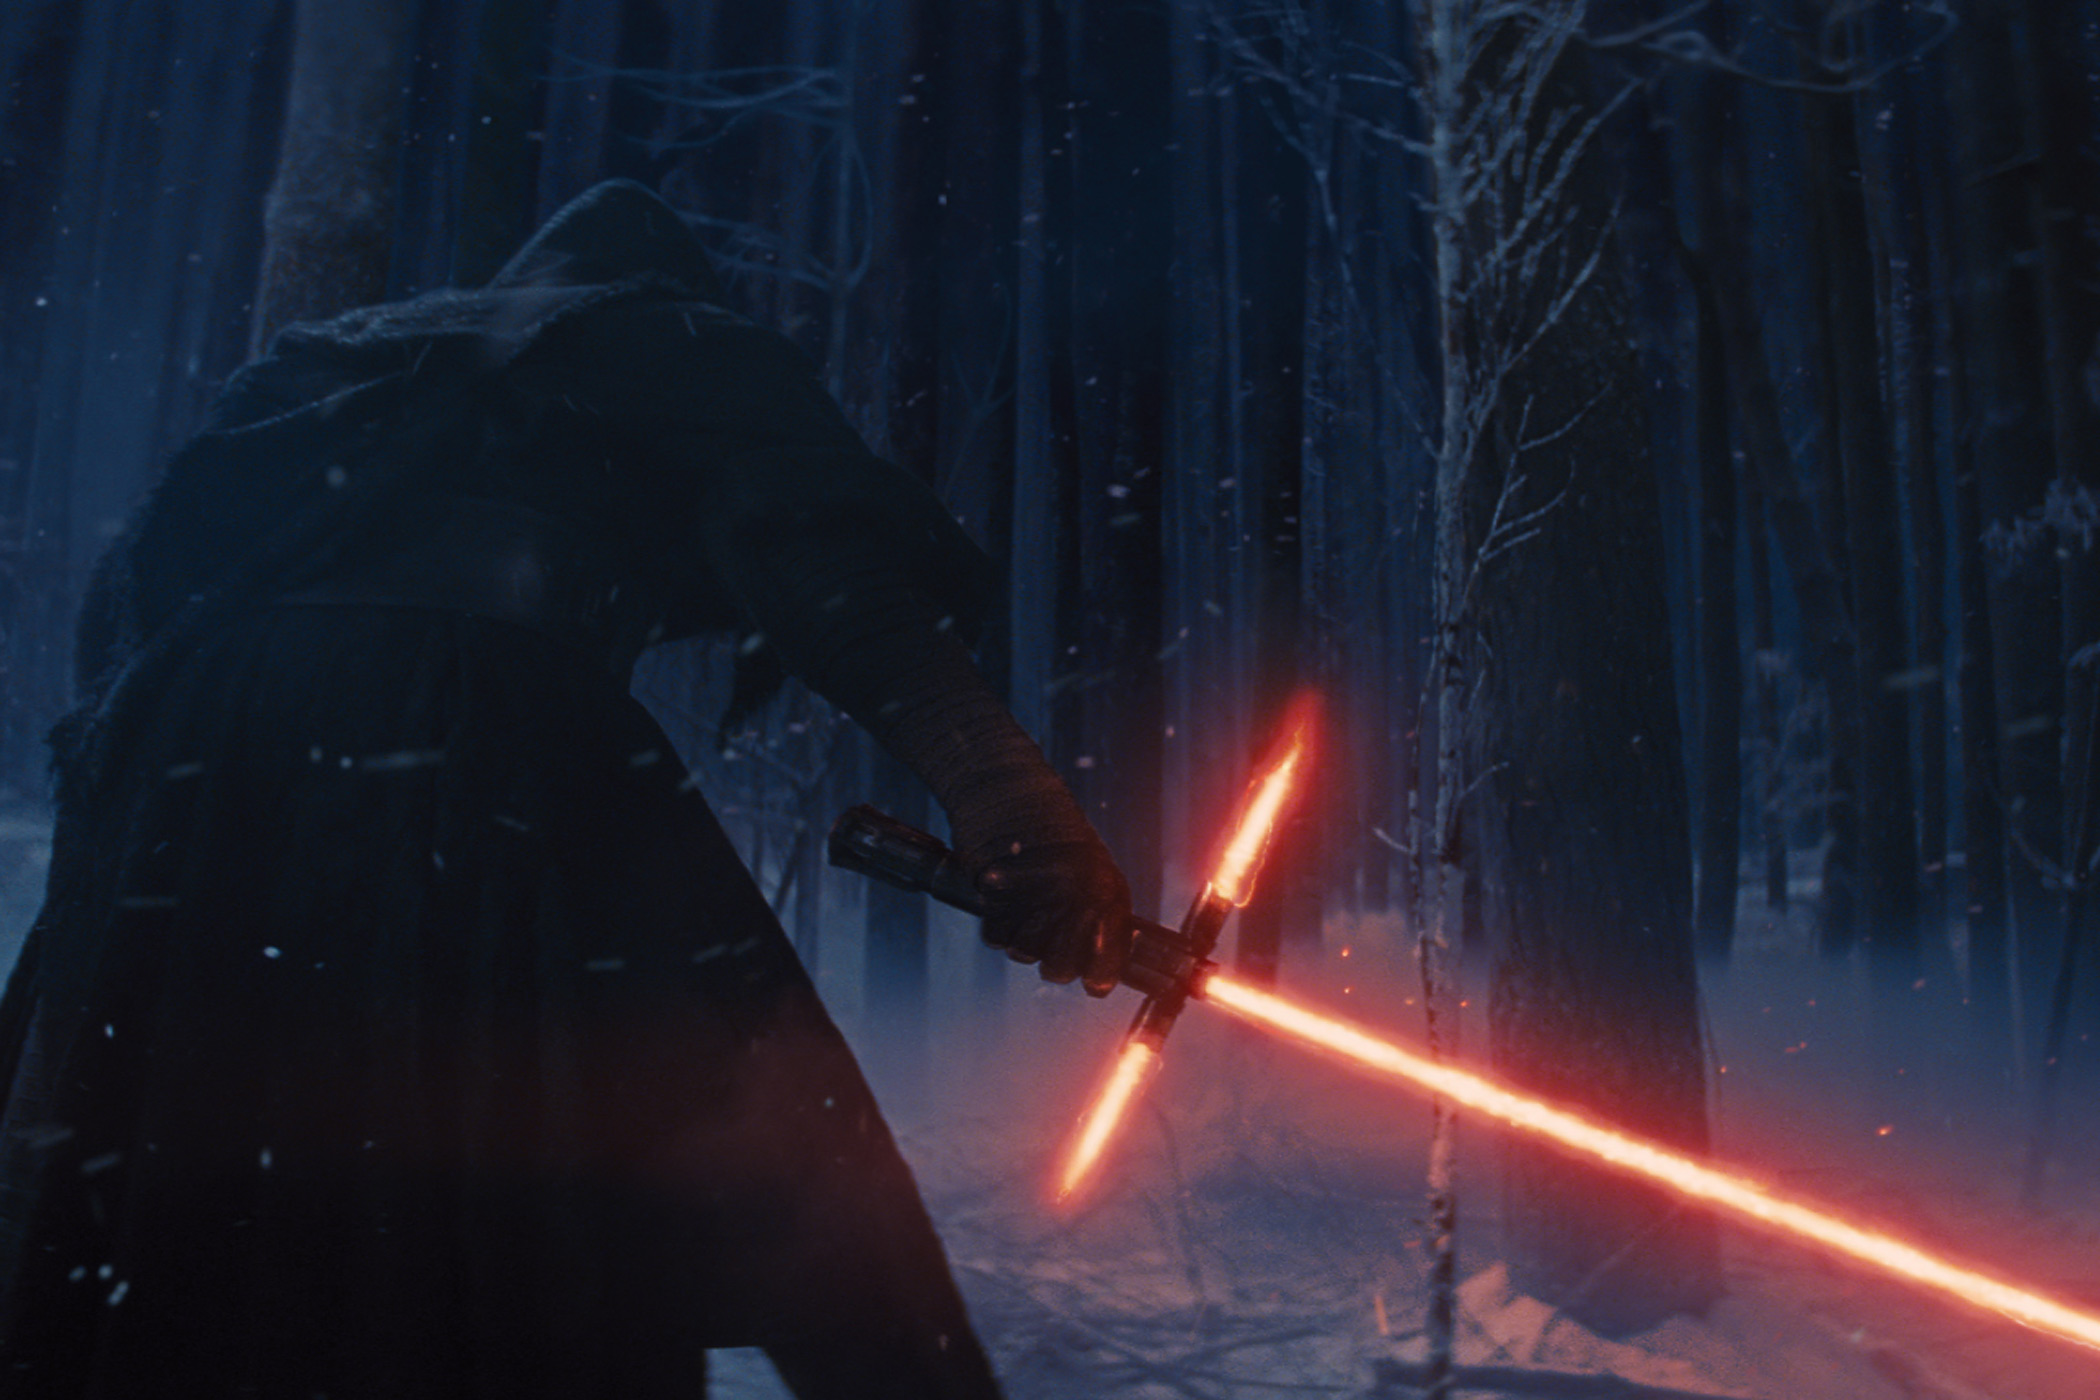 Adam Driver as Kylo Ren in Star Wars: The Force Awakens